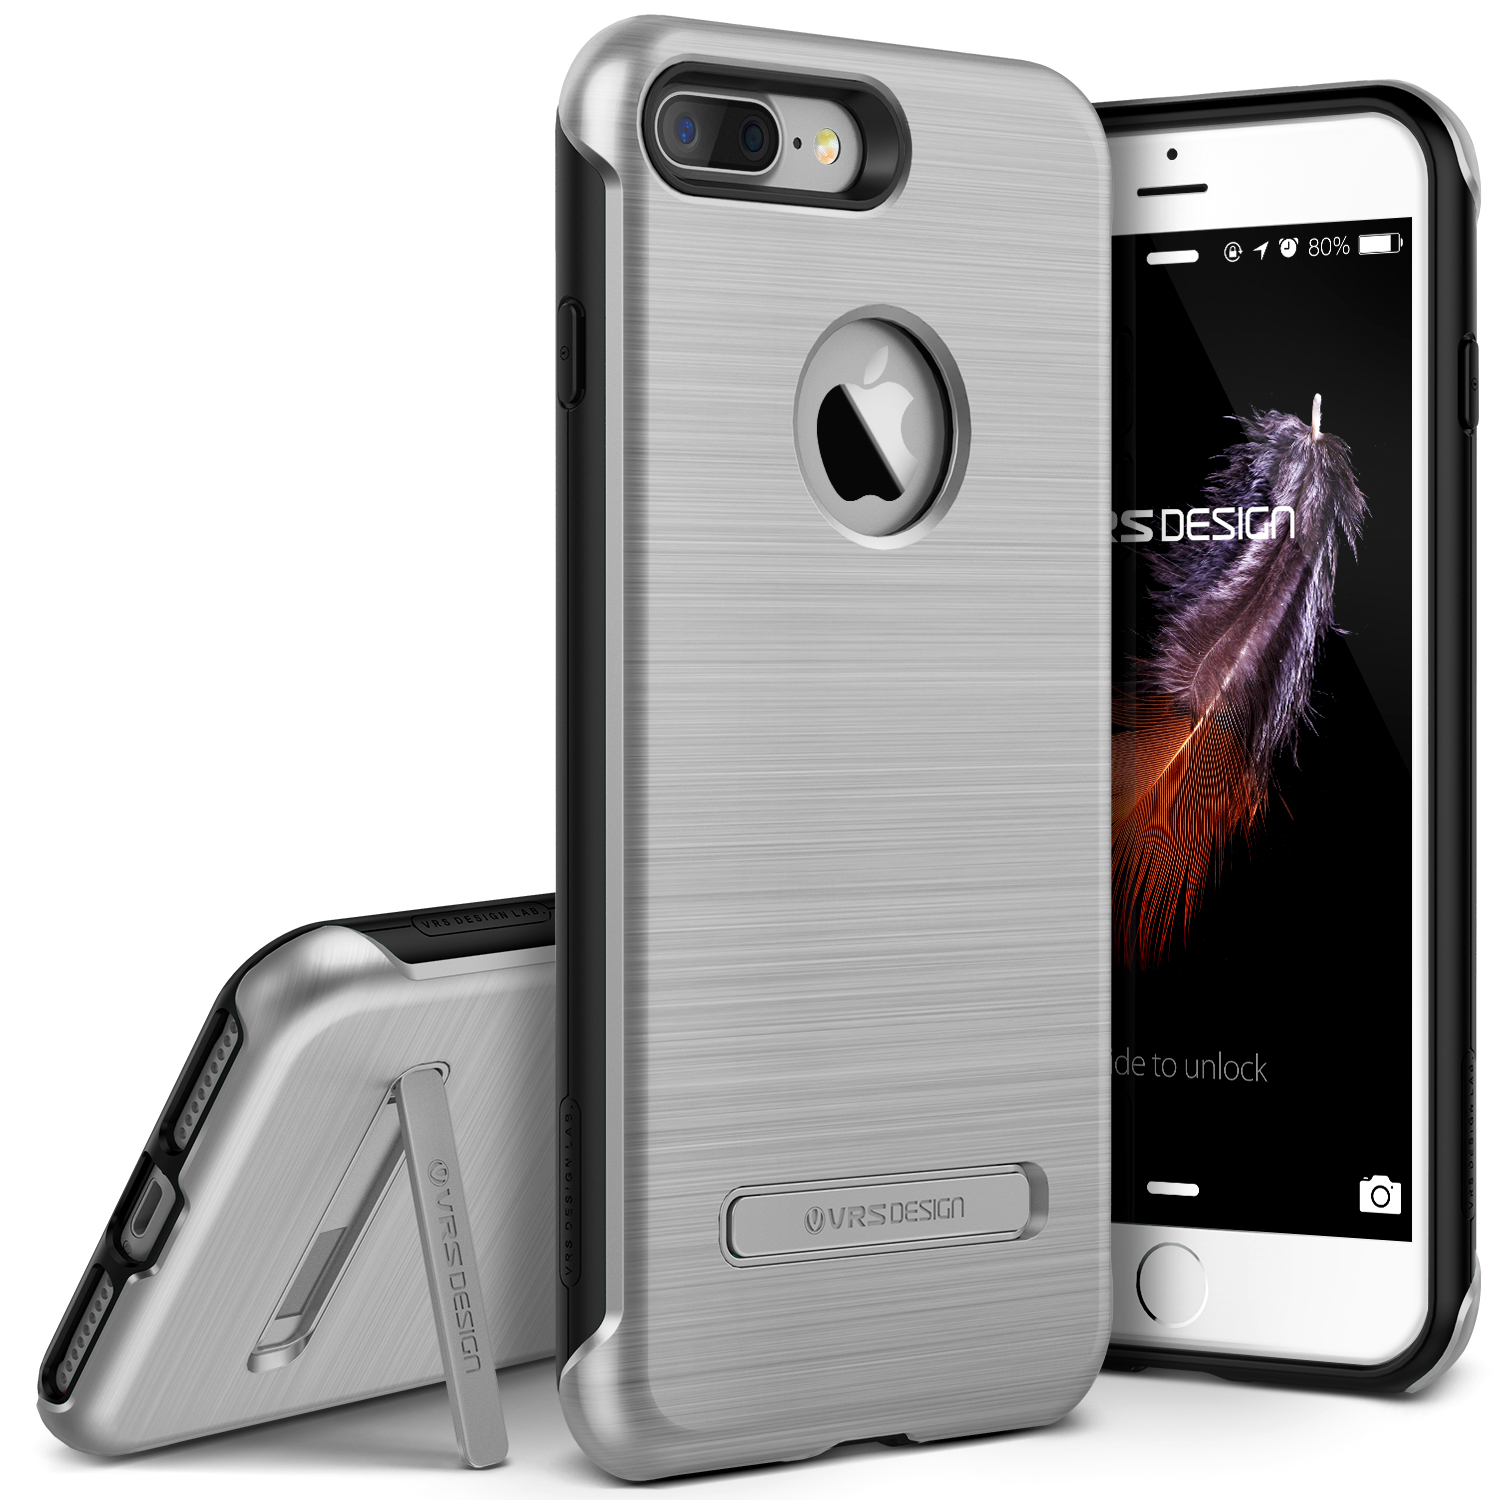 iPhone 7 Plus Case by VRS Design, Duo Guard Protective Kickstand Cover - Titanium Black